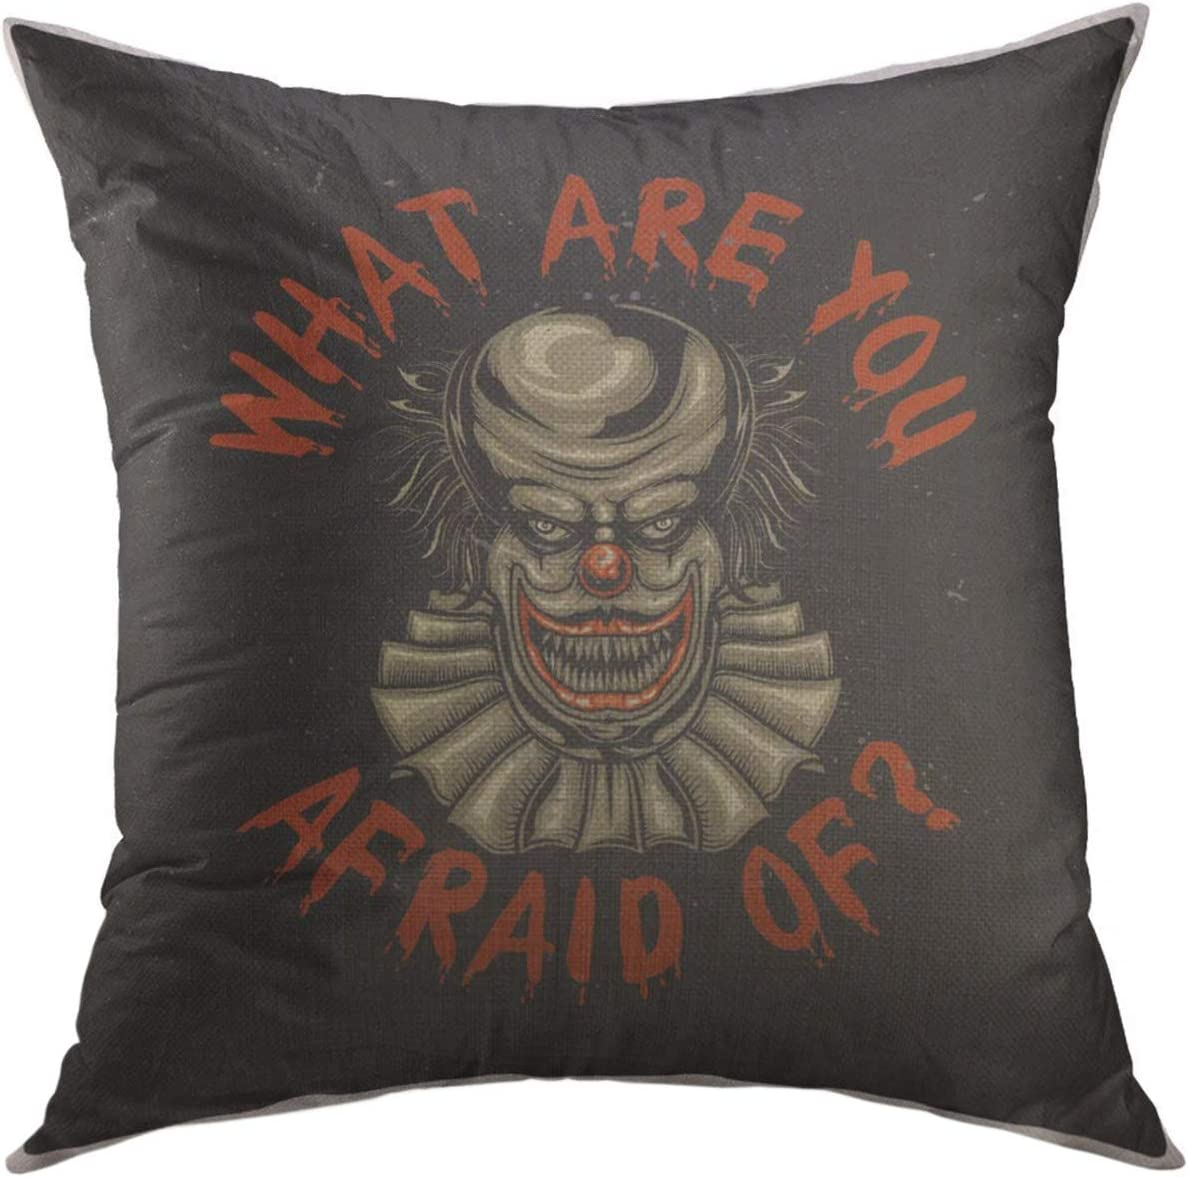 Mugod Decorative Throw Pillow Cover Couch Sofa,Colorful Cartoon Design Scary Clown Funny Home Decor Pillow case 18x18 inch